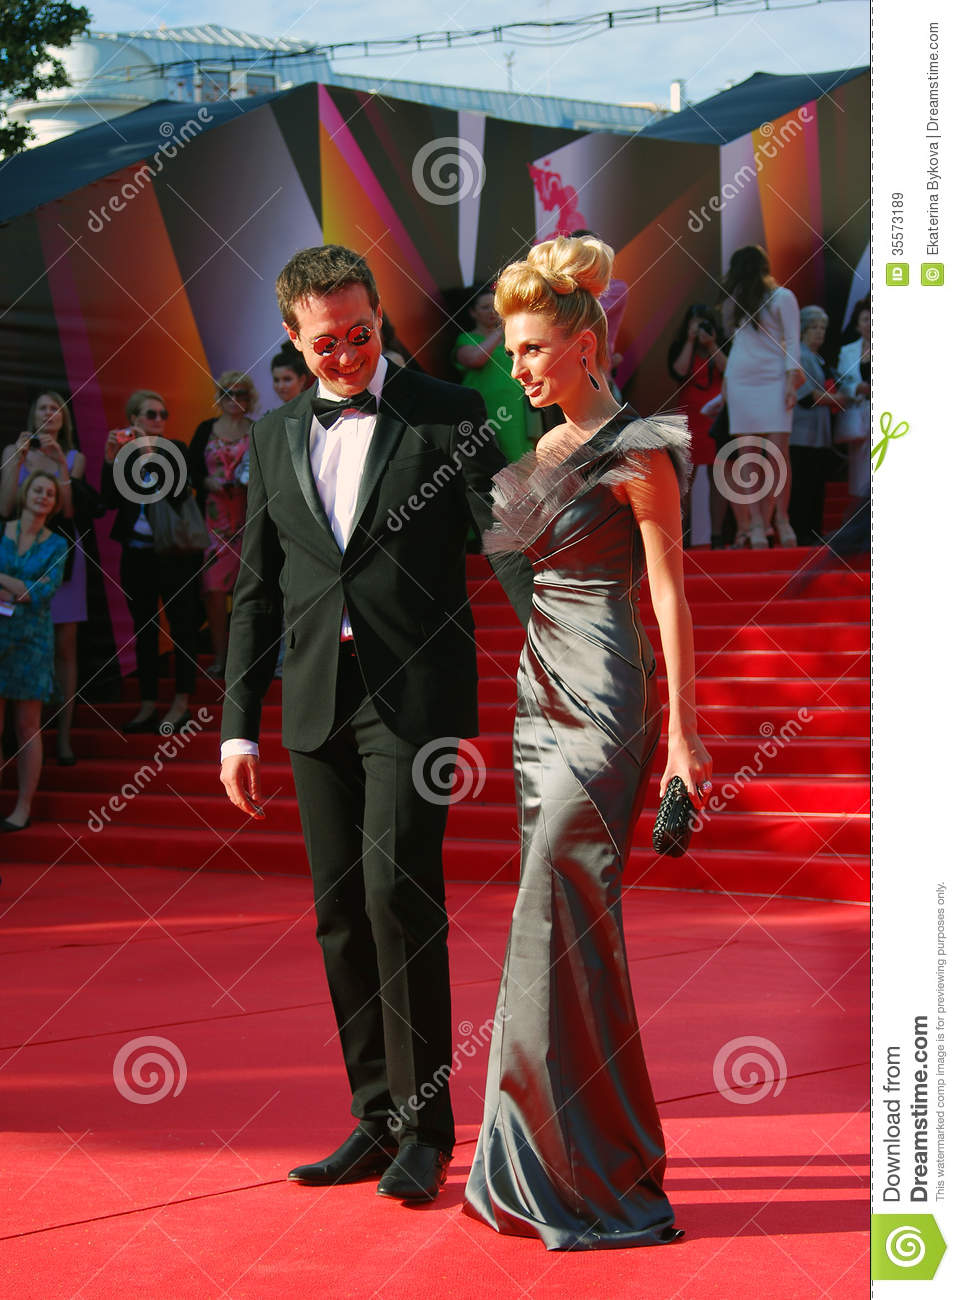 Kirill Safonov has found a replacement for his wife 29.06.2012